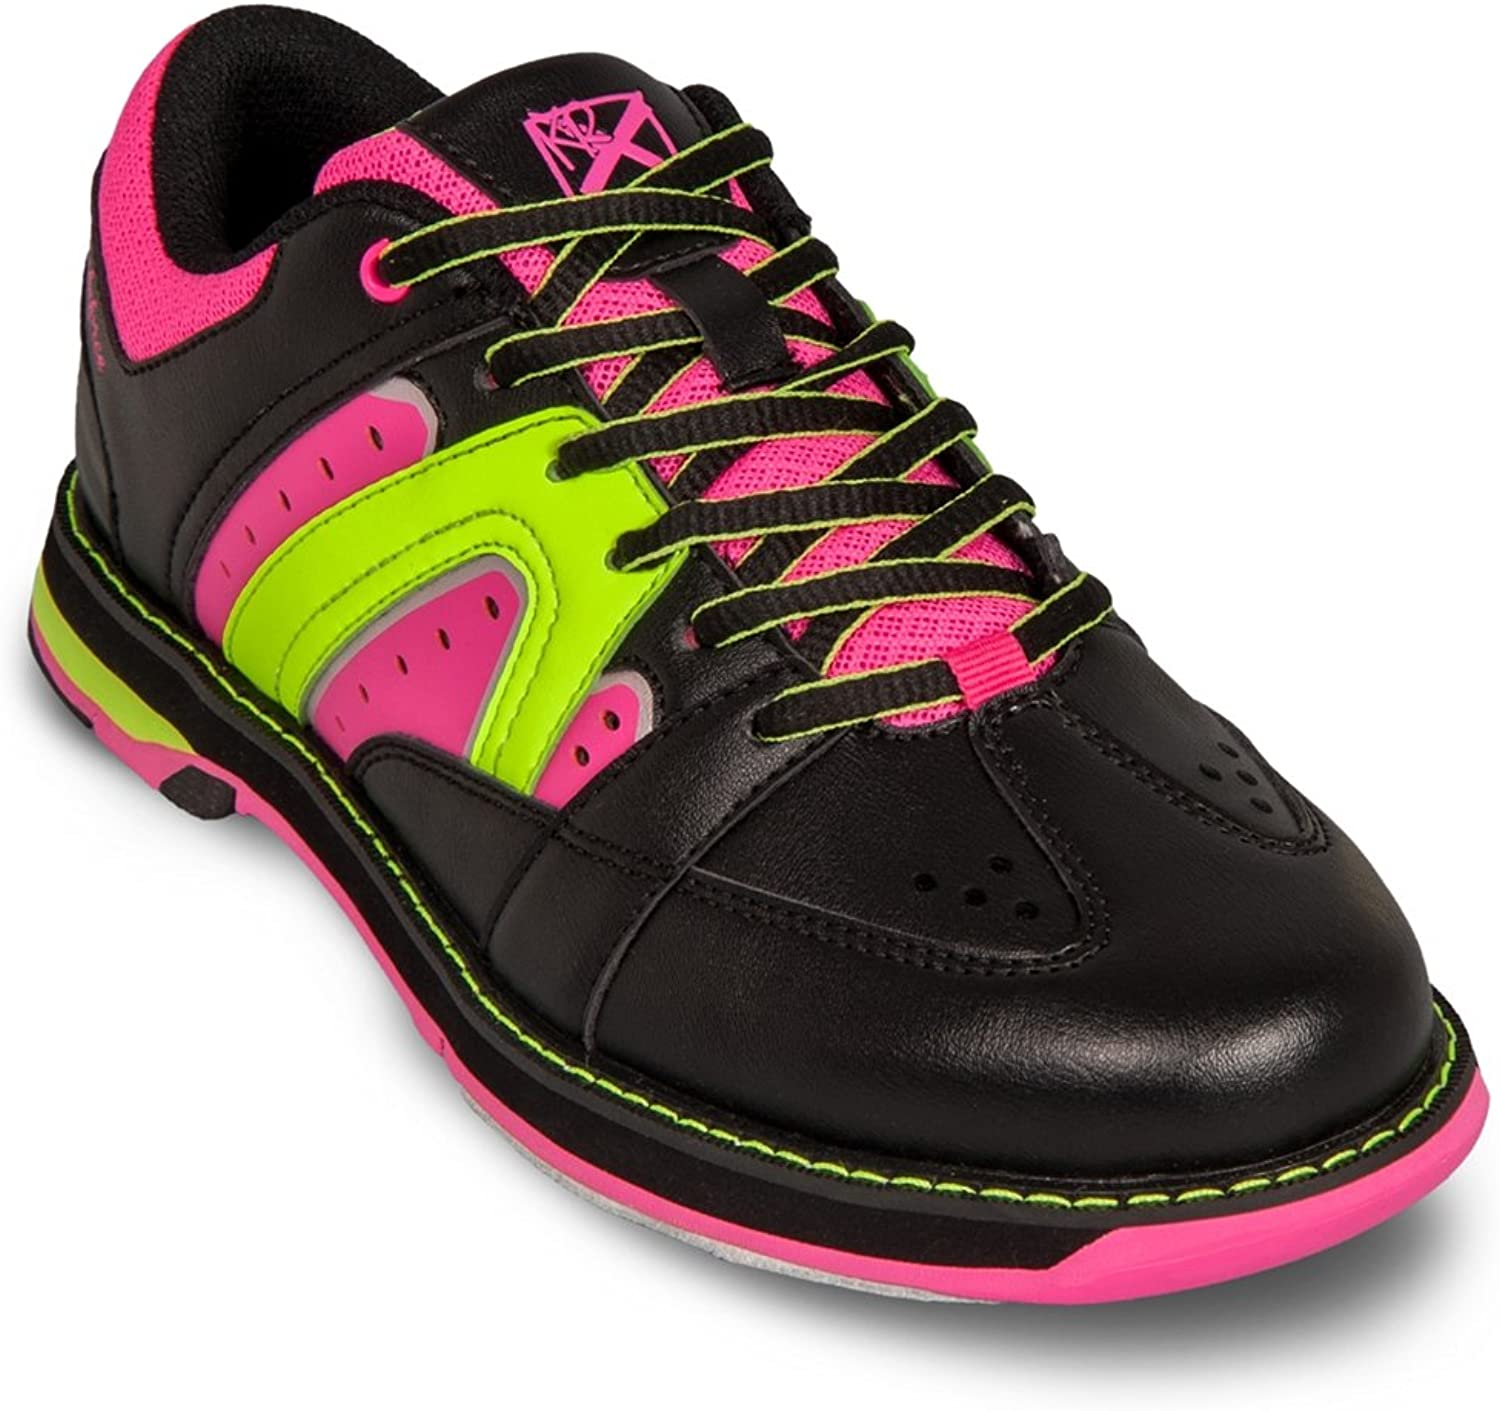 KR Strikeforce Womens Quest Bowling shoes- Black Pink Yellow